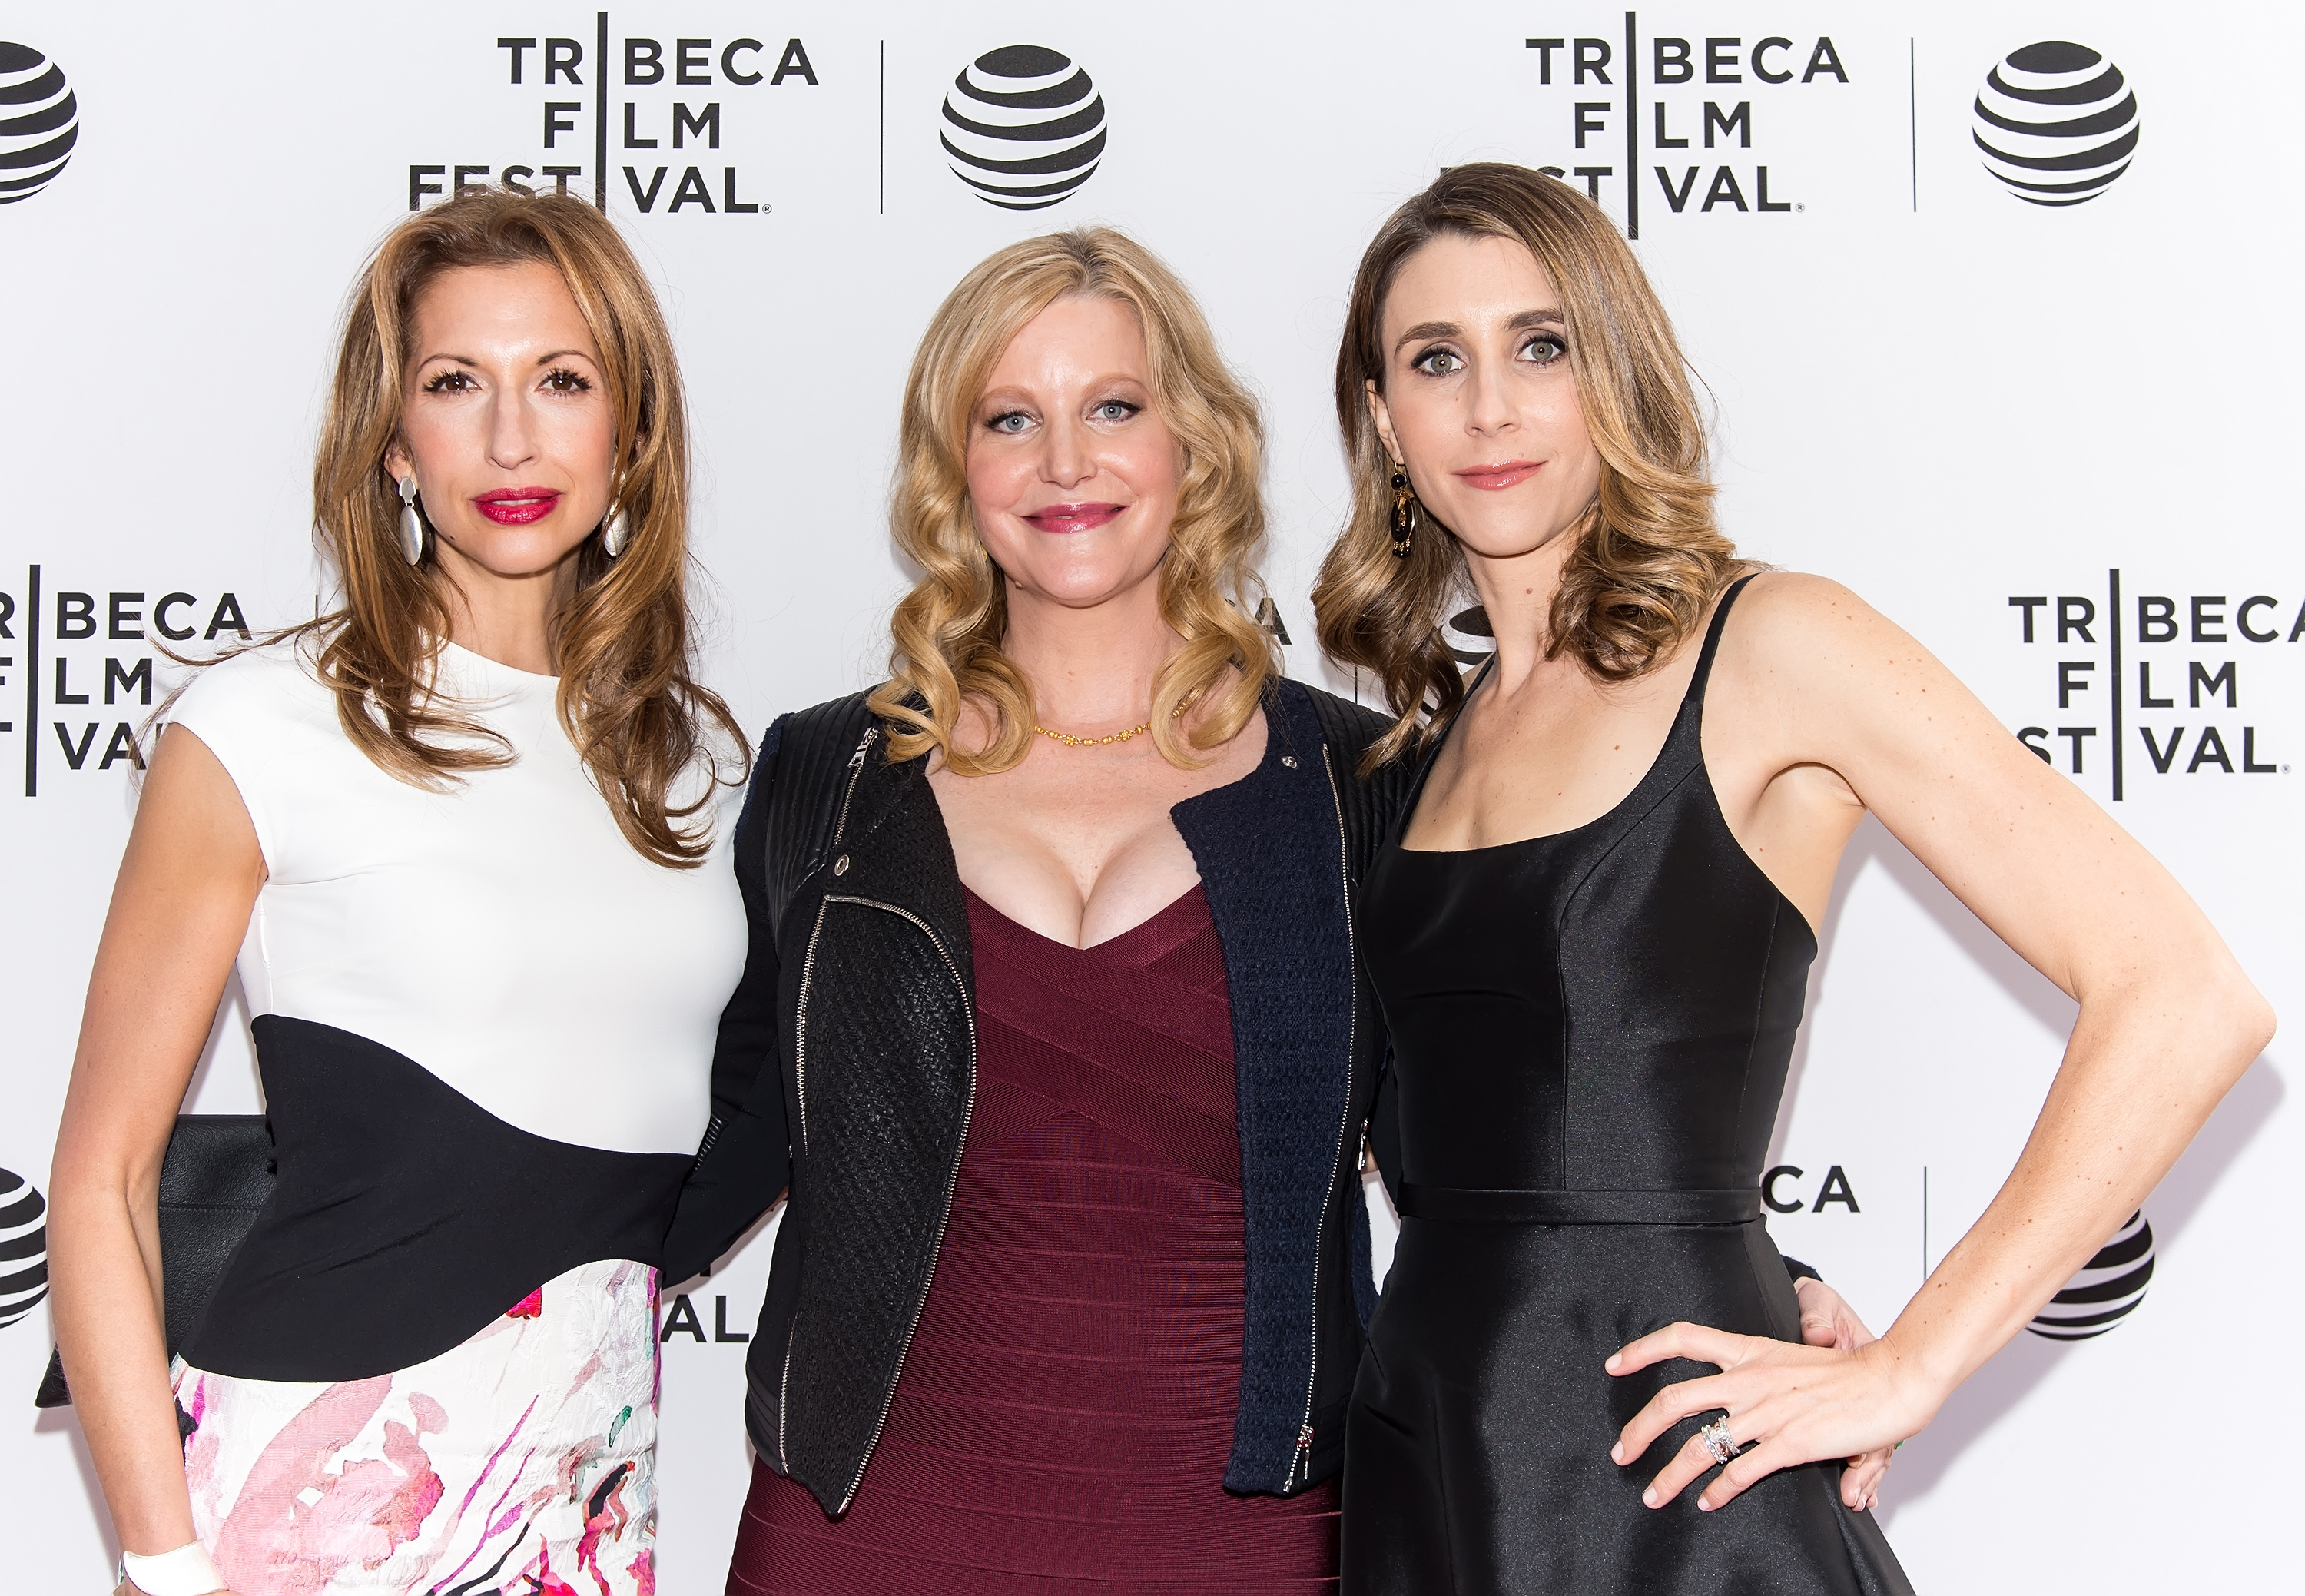 Alysia Reiner, Anna Gunn and Sarah Megan Thomas attend the Tribeca Film Festival on April 19, 2016 in New York City.